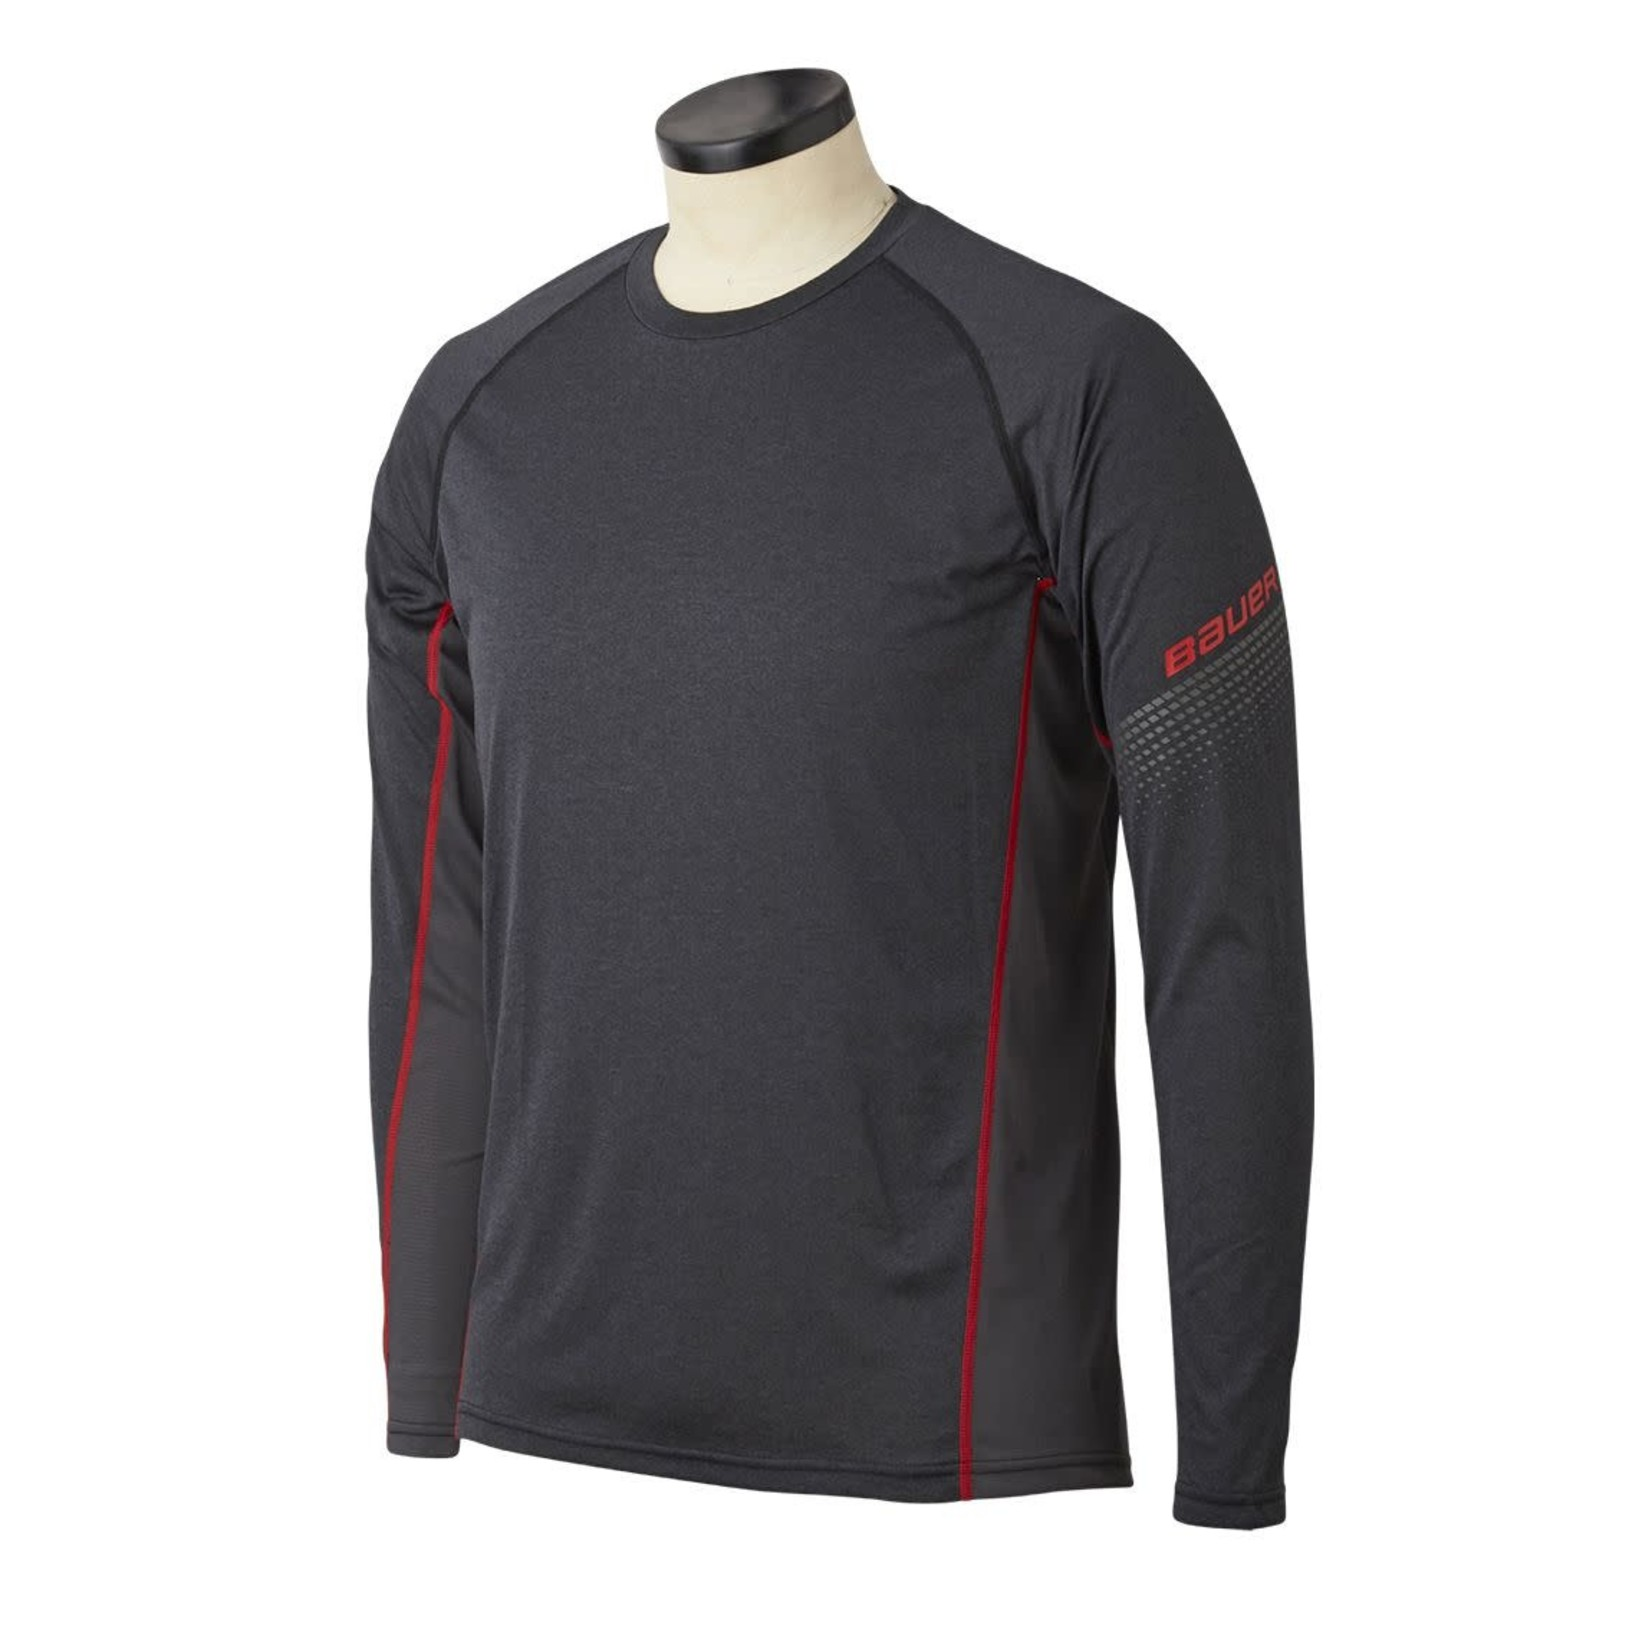 Bauer Bauer Long Sleeve Shirt, Essential Baselayer Top, Youth